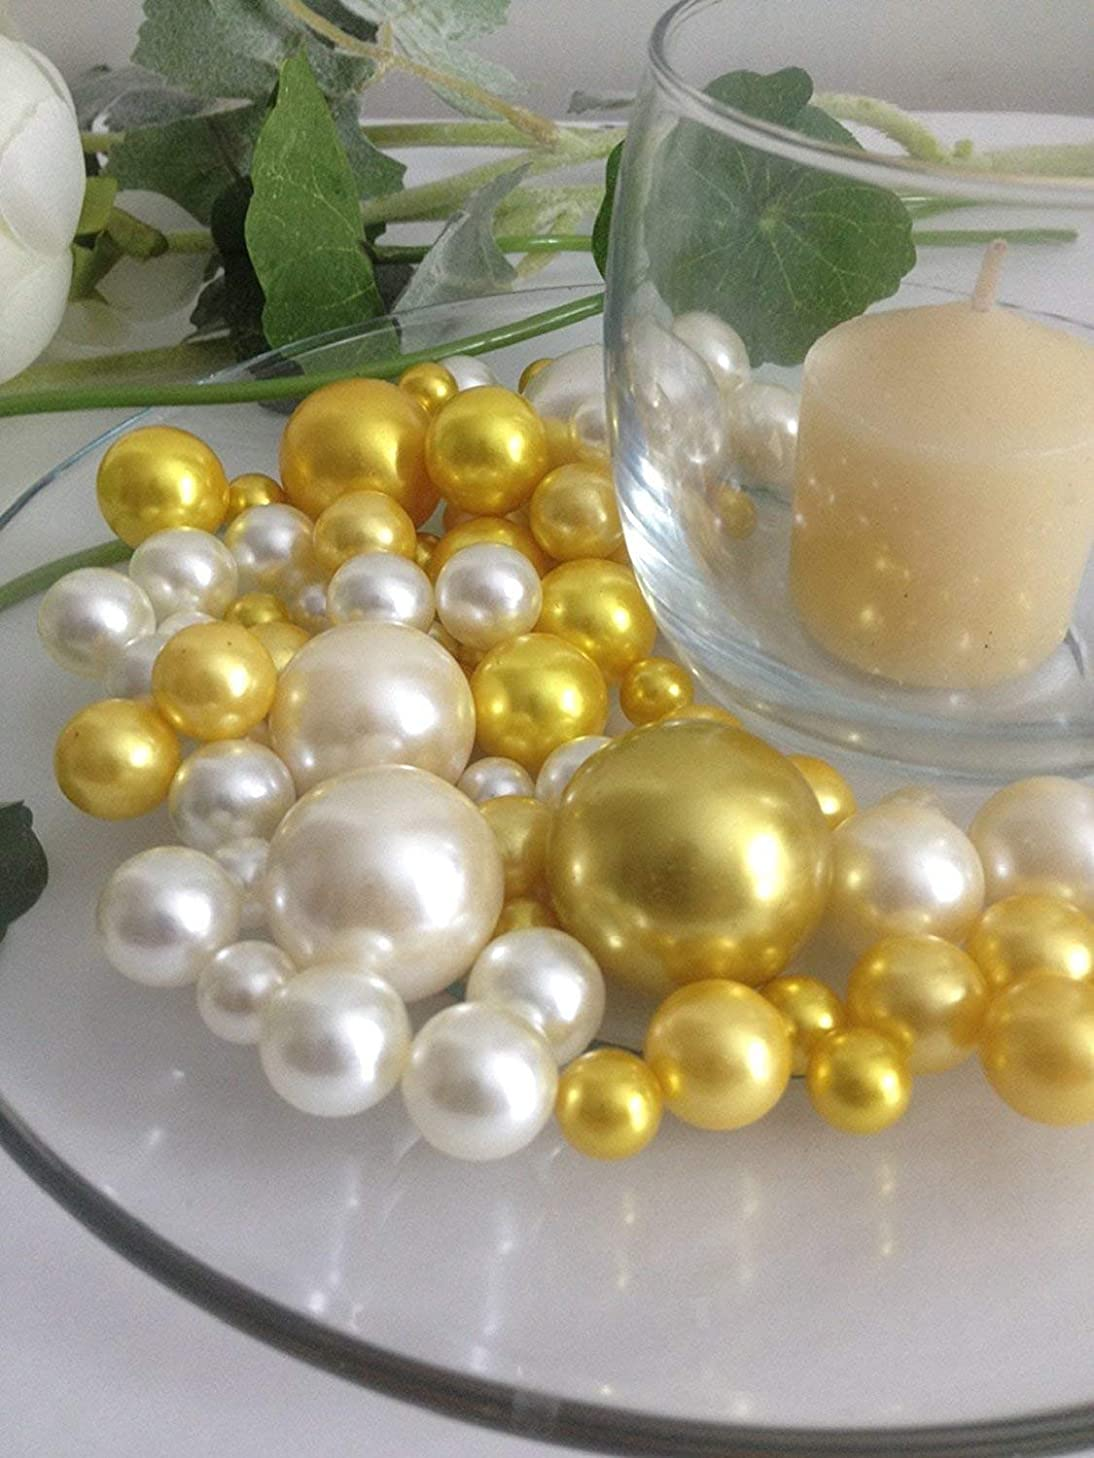 JellyBeadZ Brand Easy Elegance Yellow and White Pearl Beads Including Clear JellyBeadZ Great for Wedding Centerpieces and Decorations